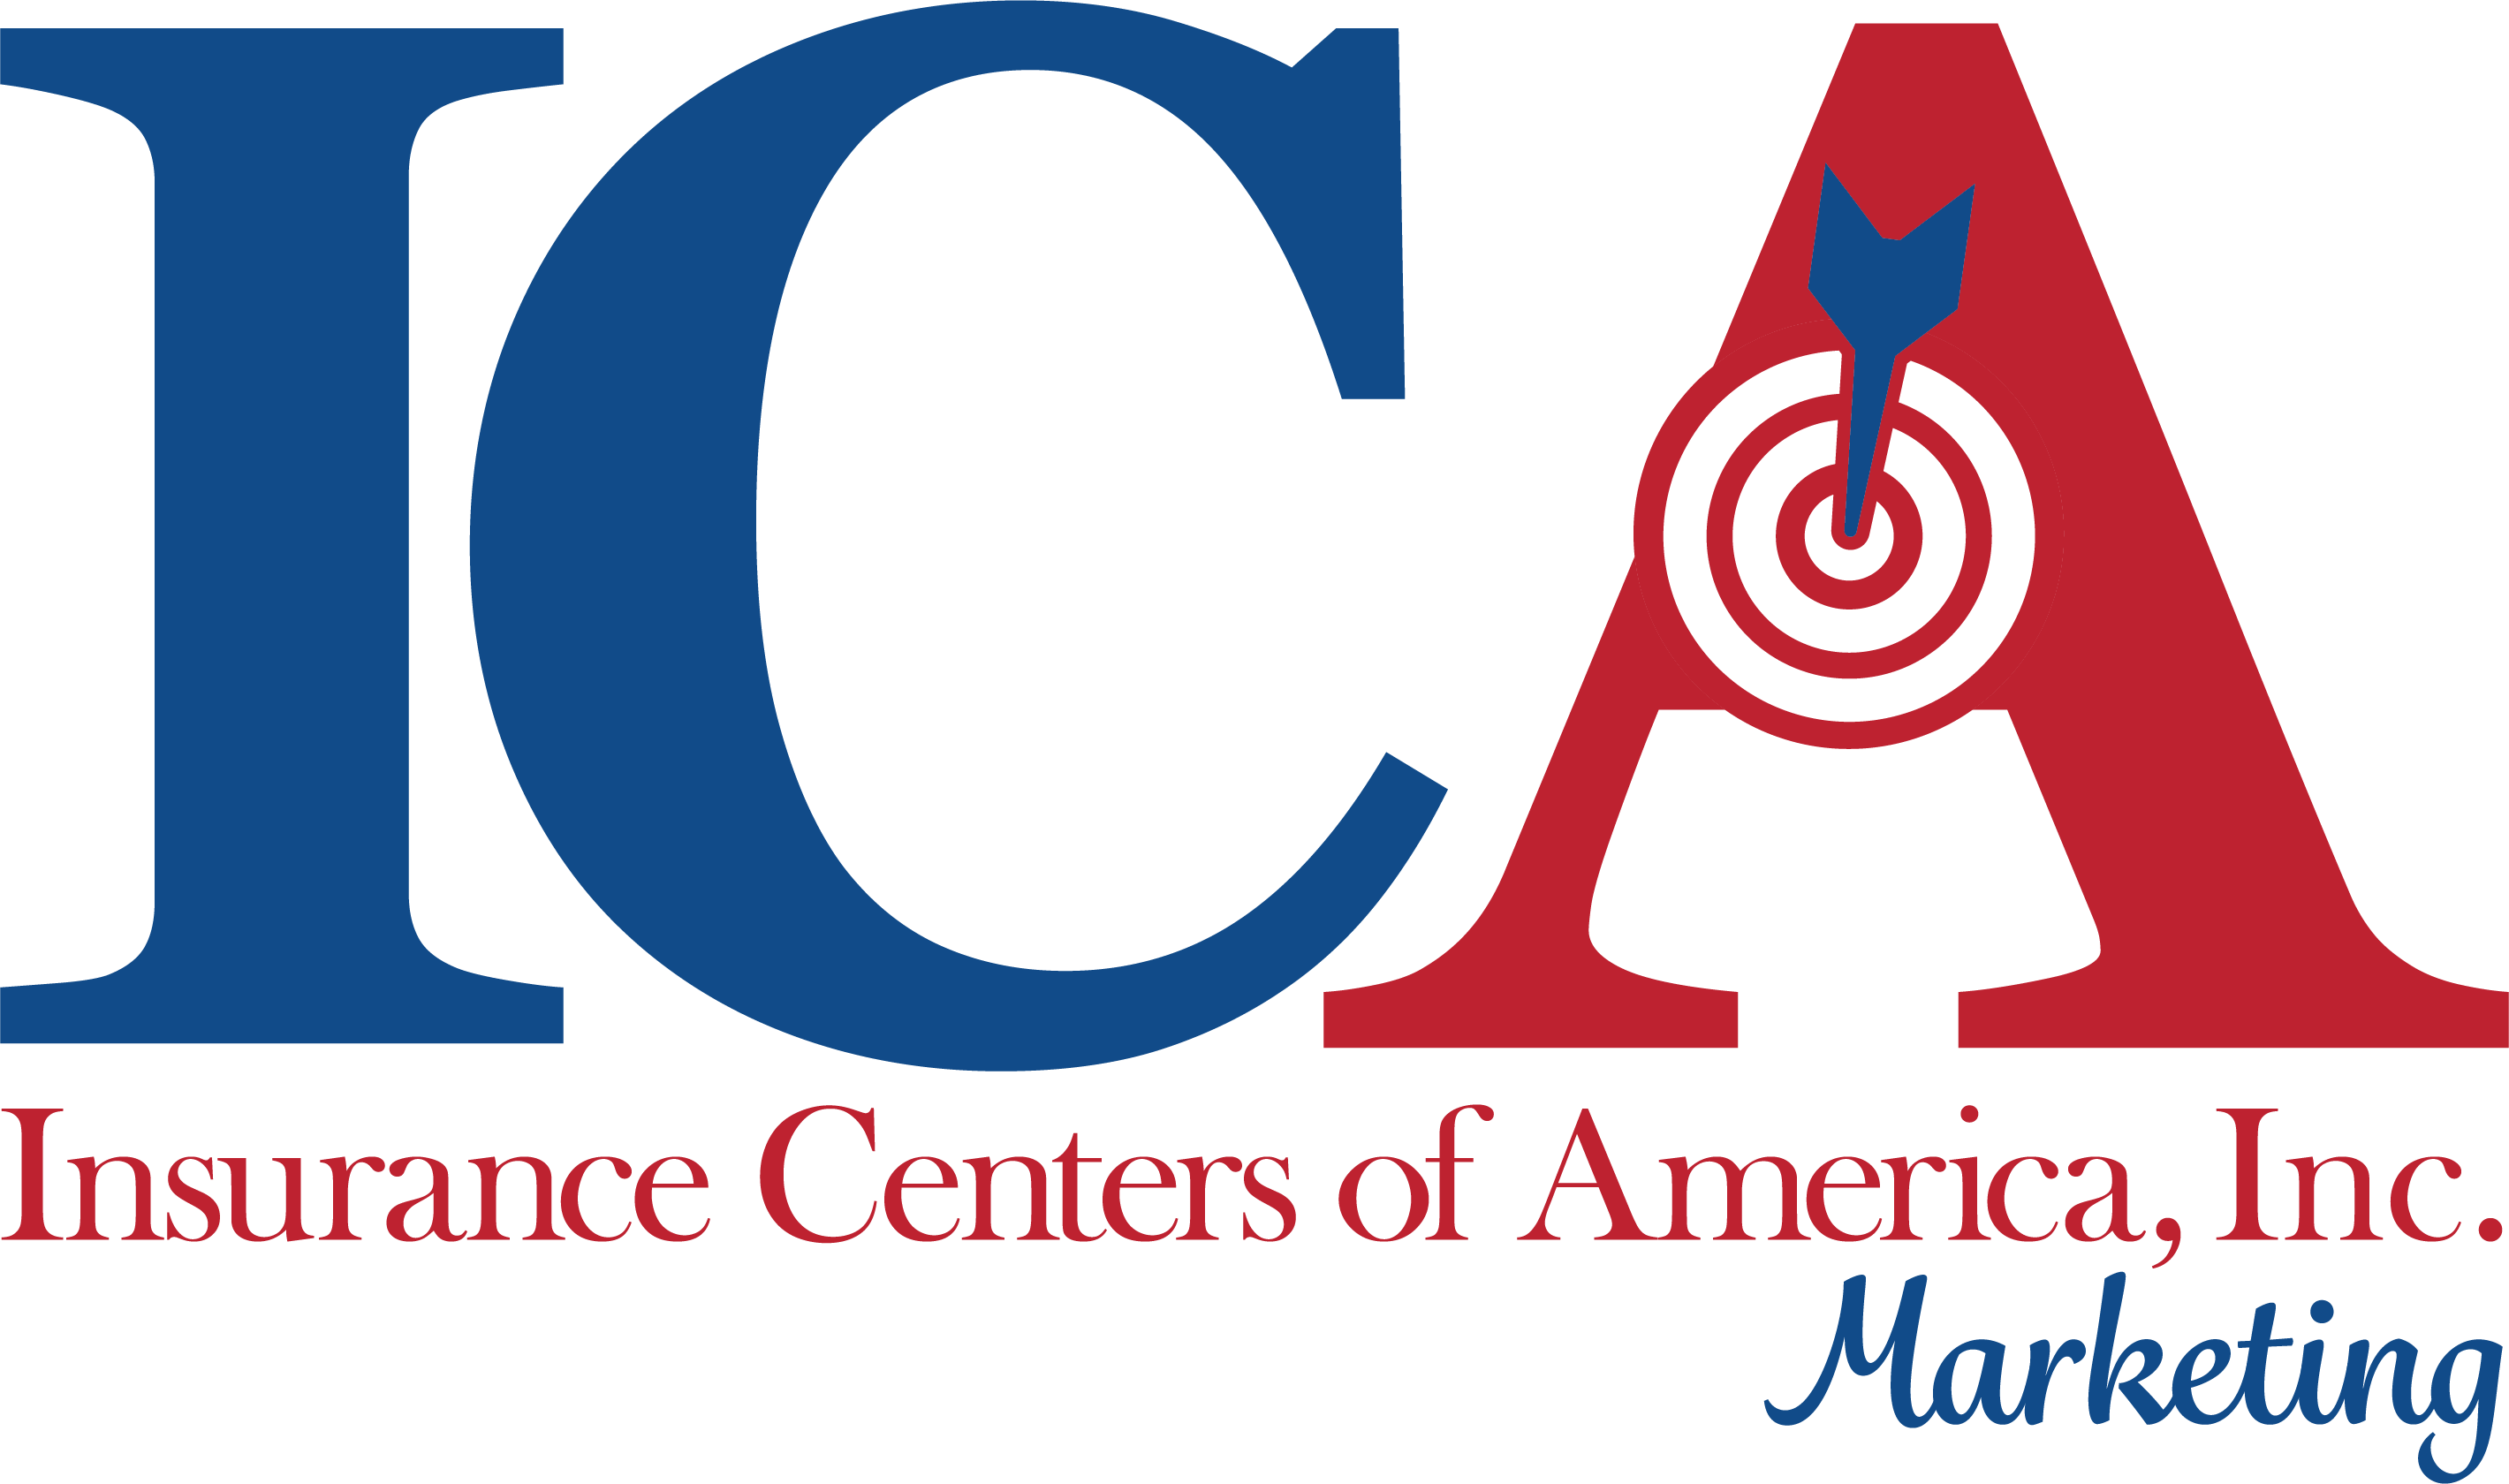 ICA Marketing Logo